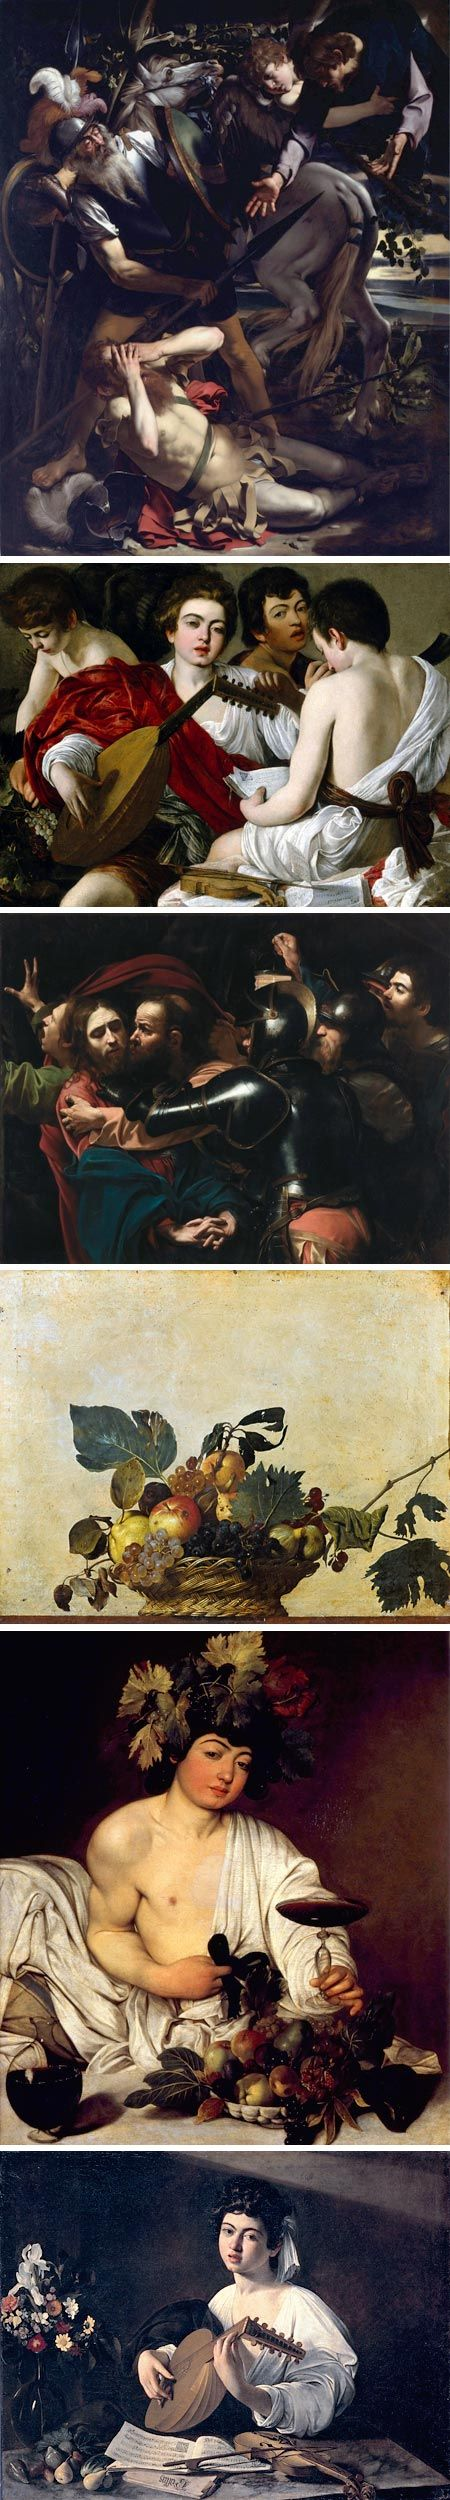 lines and colors :: a blog about drawing, painting, illustration, comics, concept art and other visual arts » Caravaggio in Rome